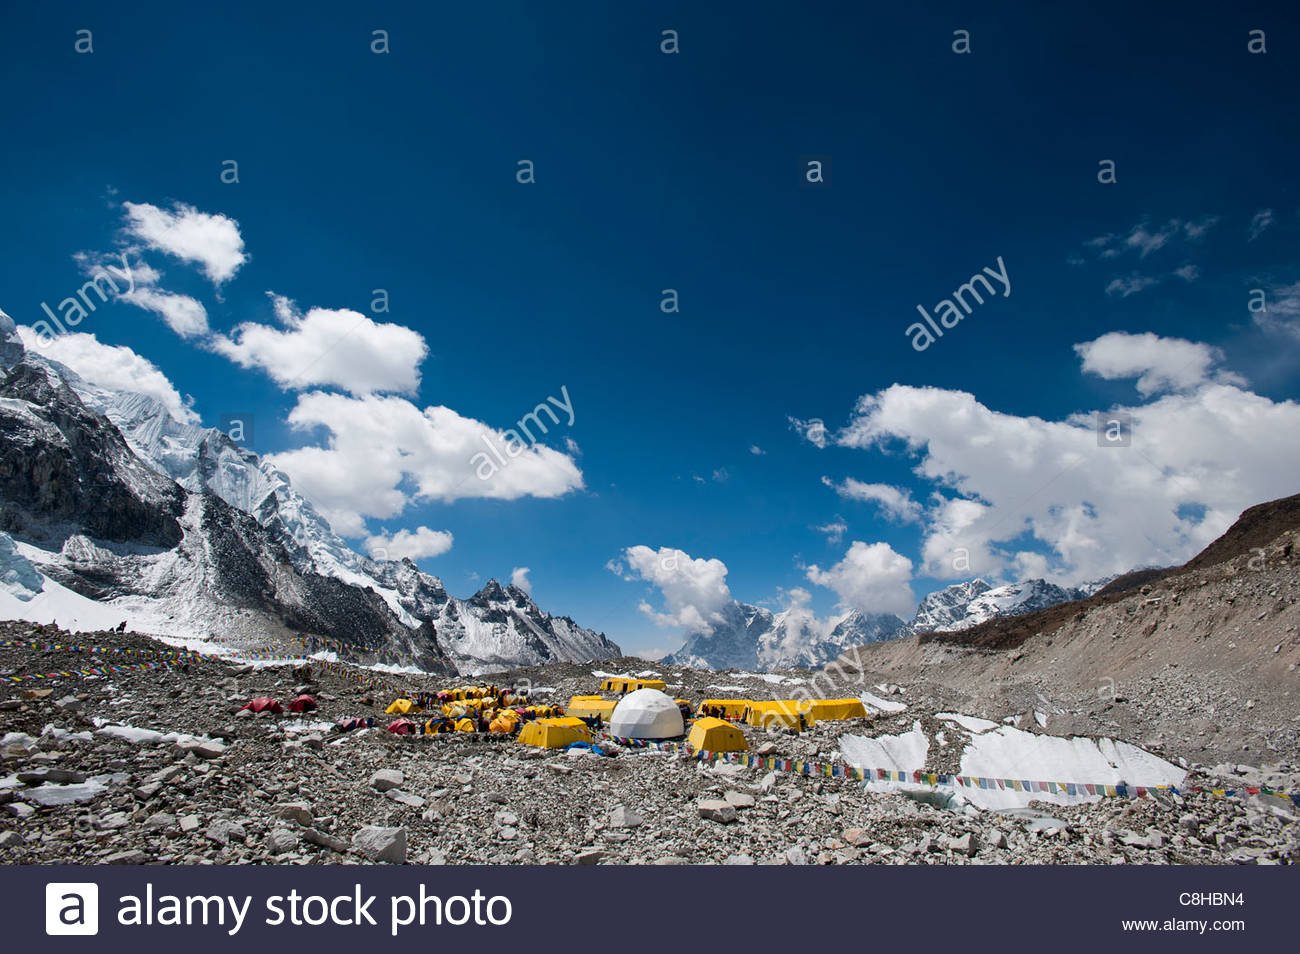 Everest base camp is a temporary city at 5500m on the Khumbu glacier - Stock Image